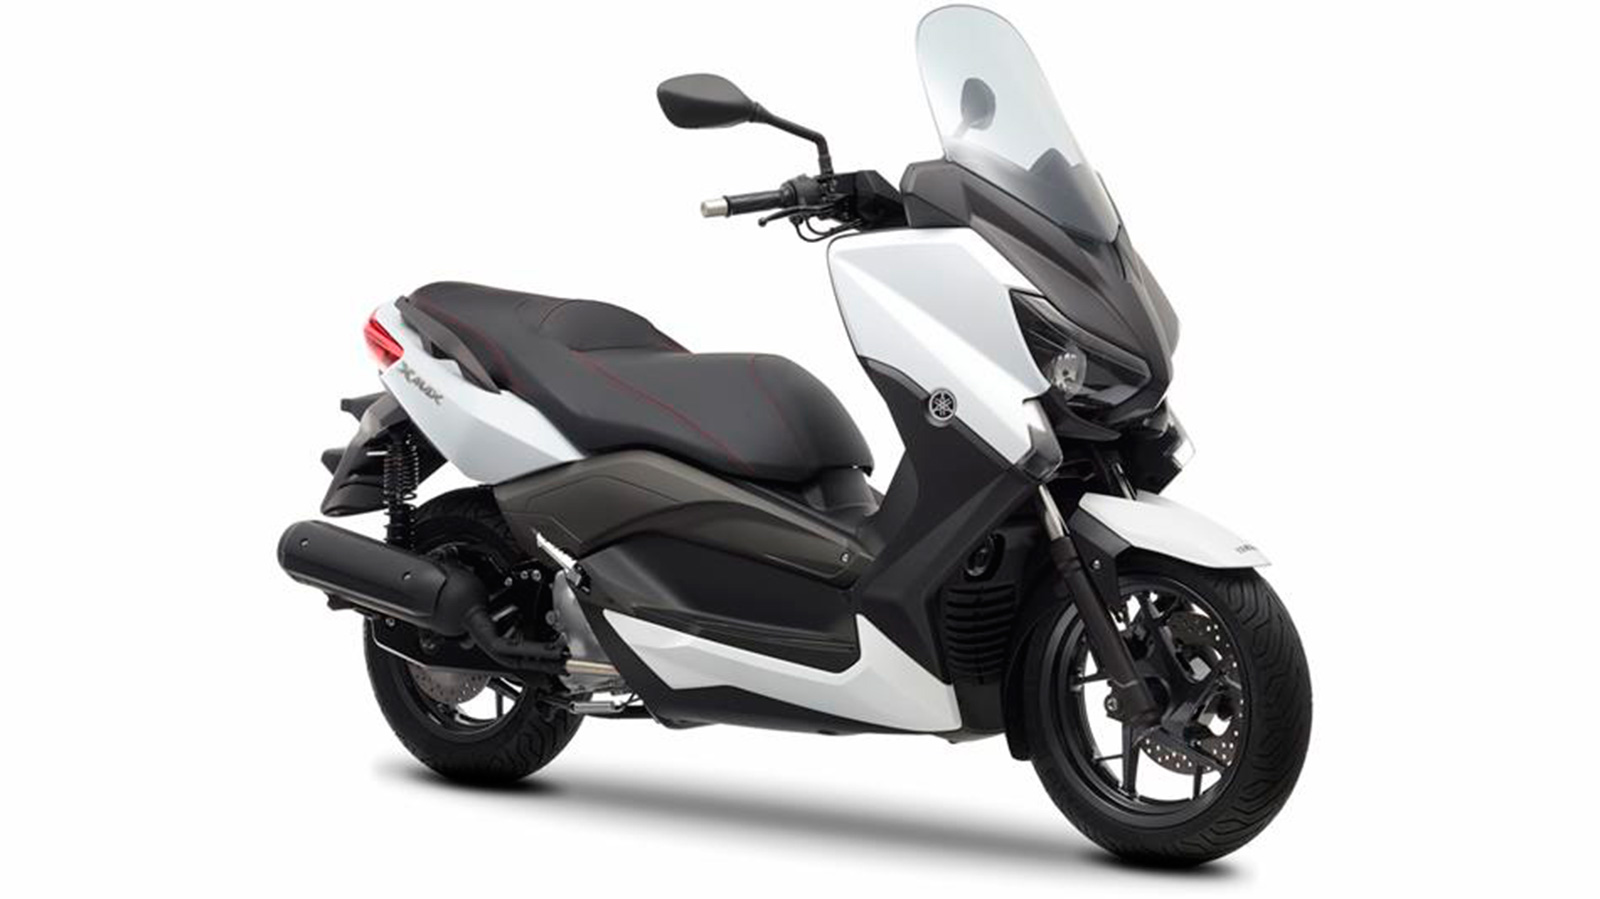 foto yamaha xmax 125 abs 2014 frontal derecho 17. Black Bedroom Furniture Sets. Home Design Ideas